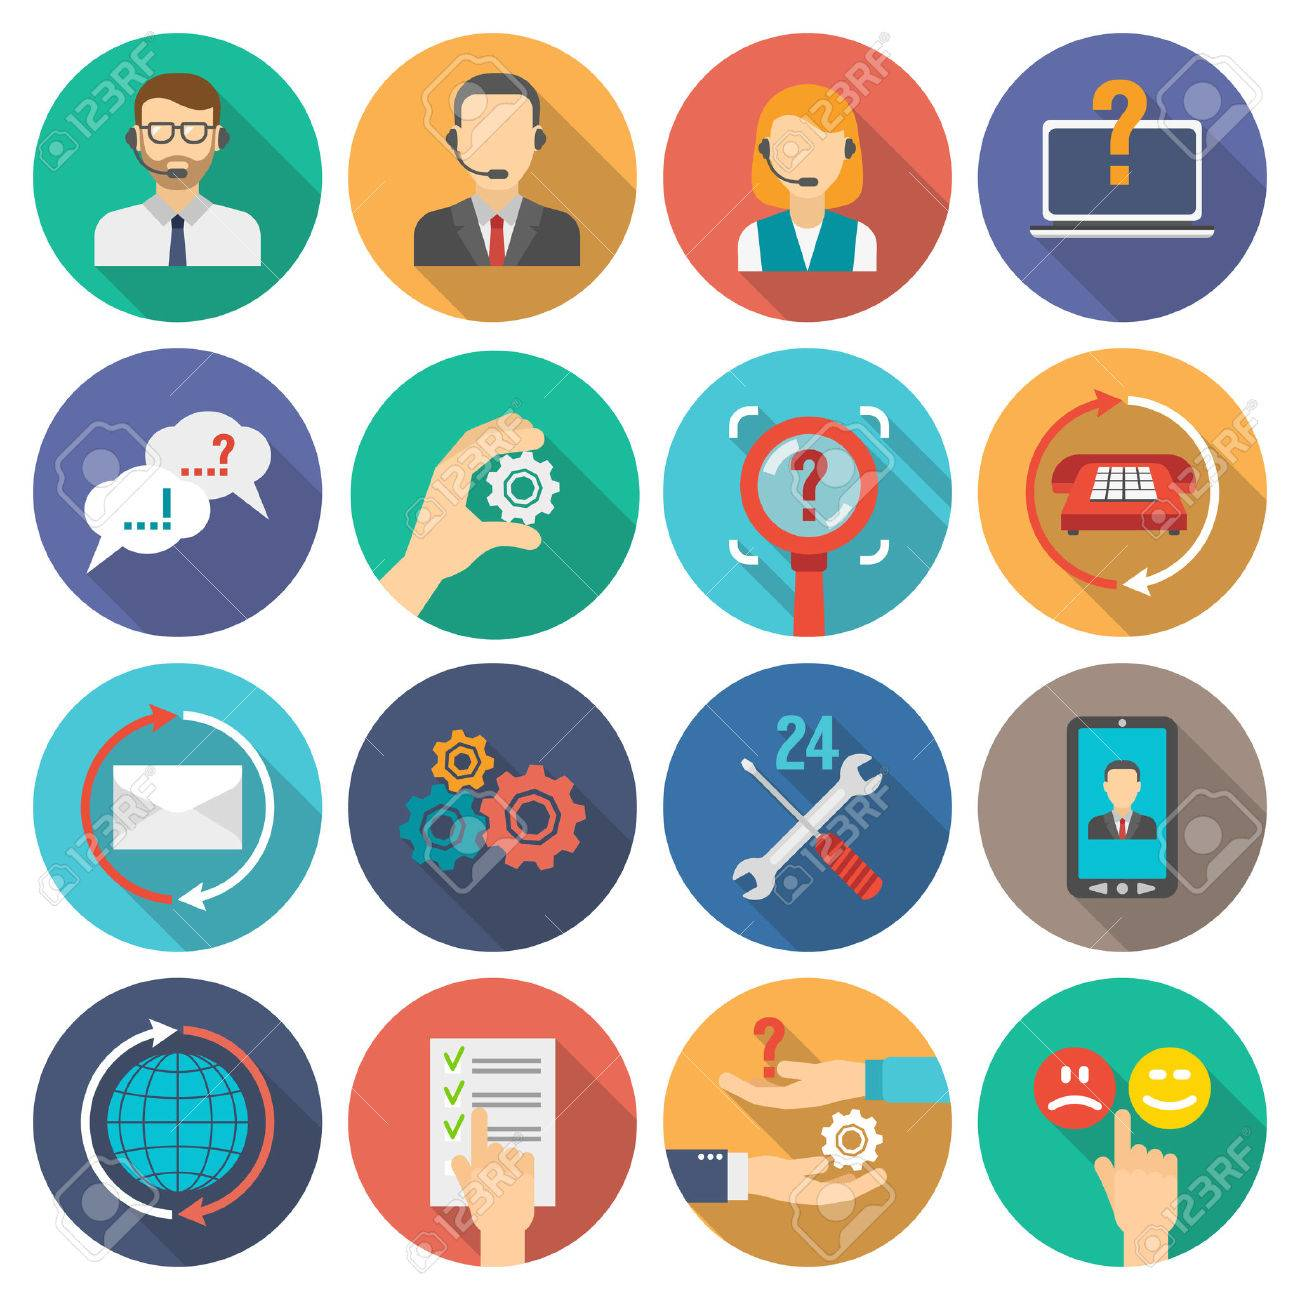 Technical support and customer assistance icons flat set isolated vector illustration - 41536902